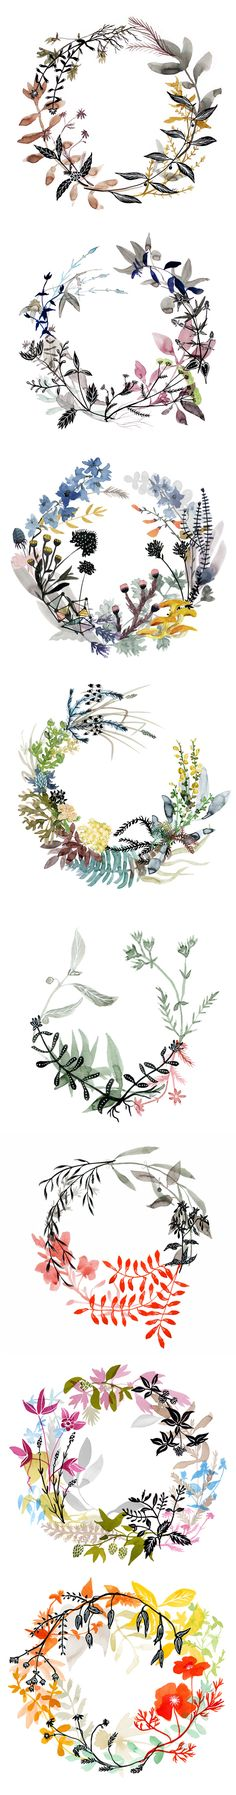 watercolor wreaths by Katie Vernon